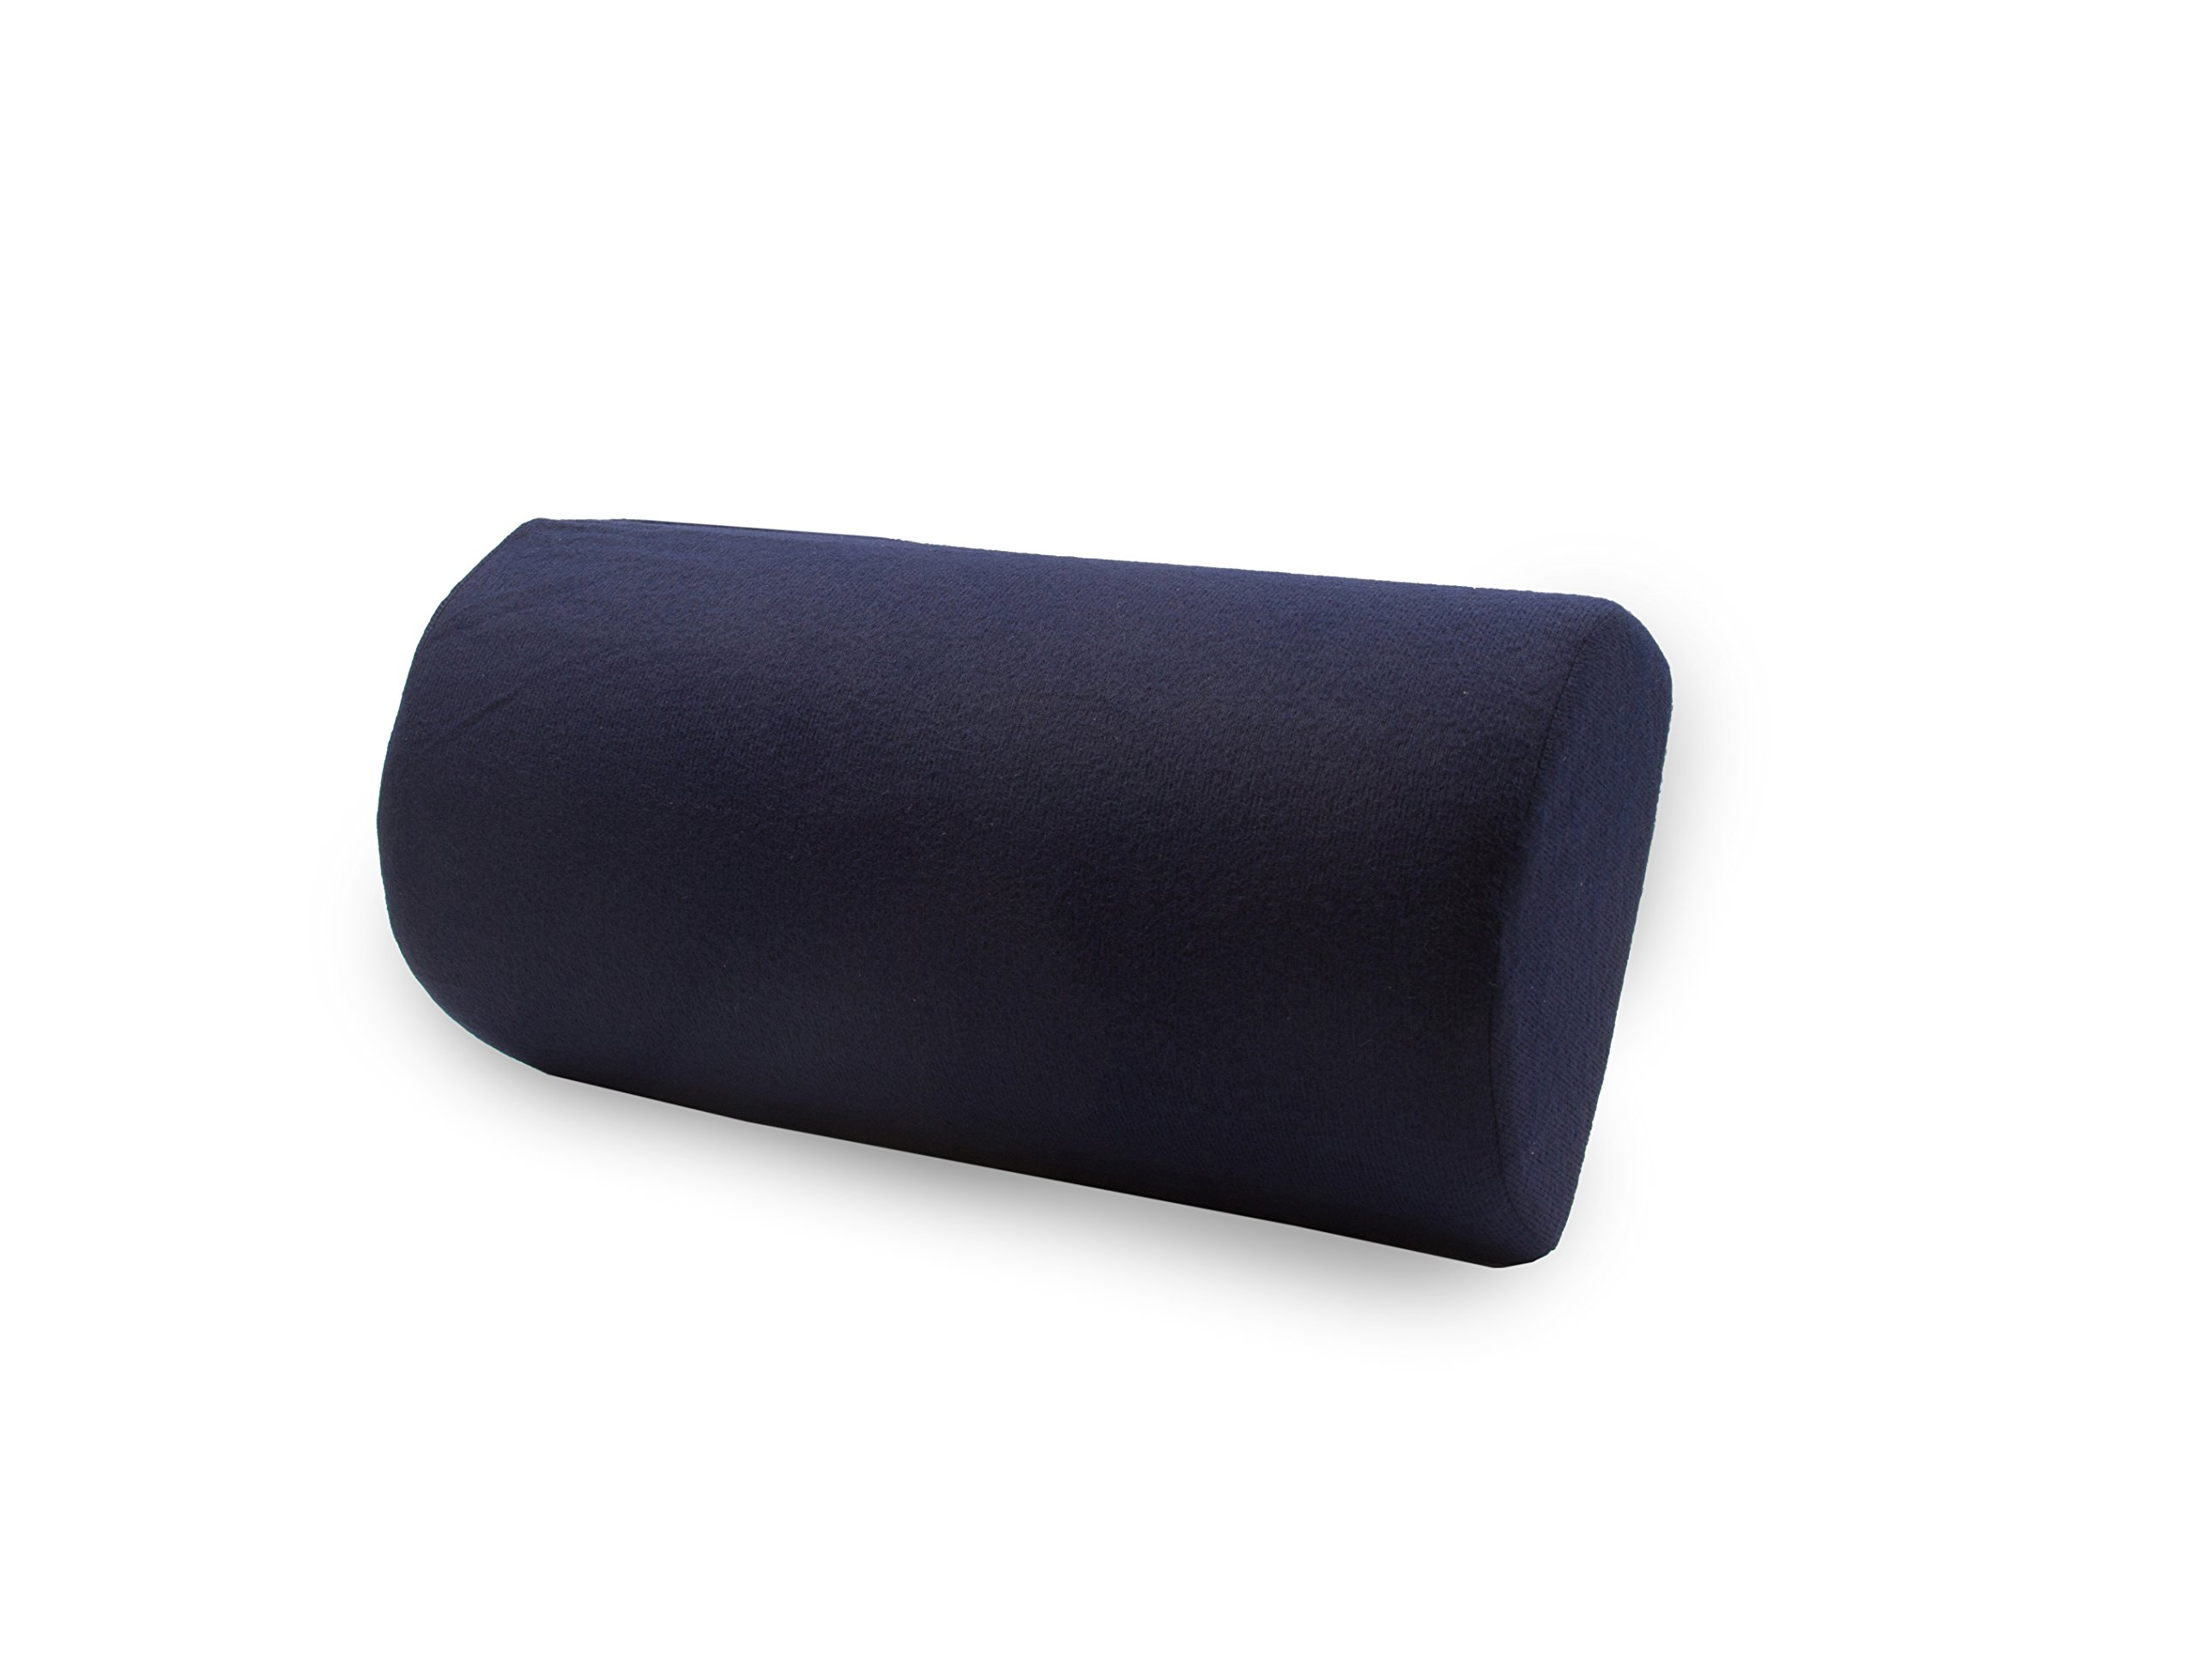 Half Moon Lumbar Roll with Attachment Strap - Extra-Firm Half Roll Lower Back Support Cushion